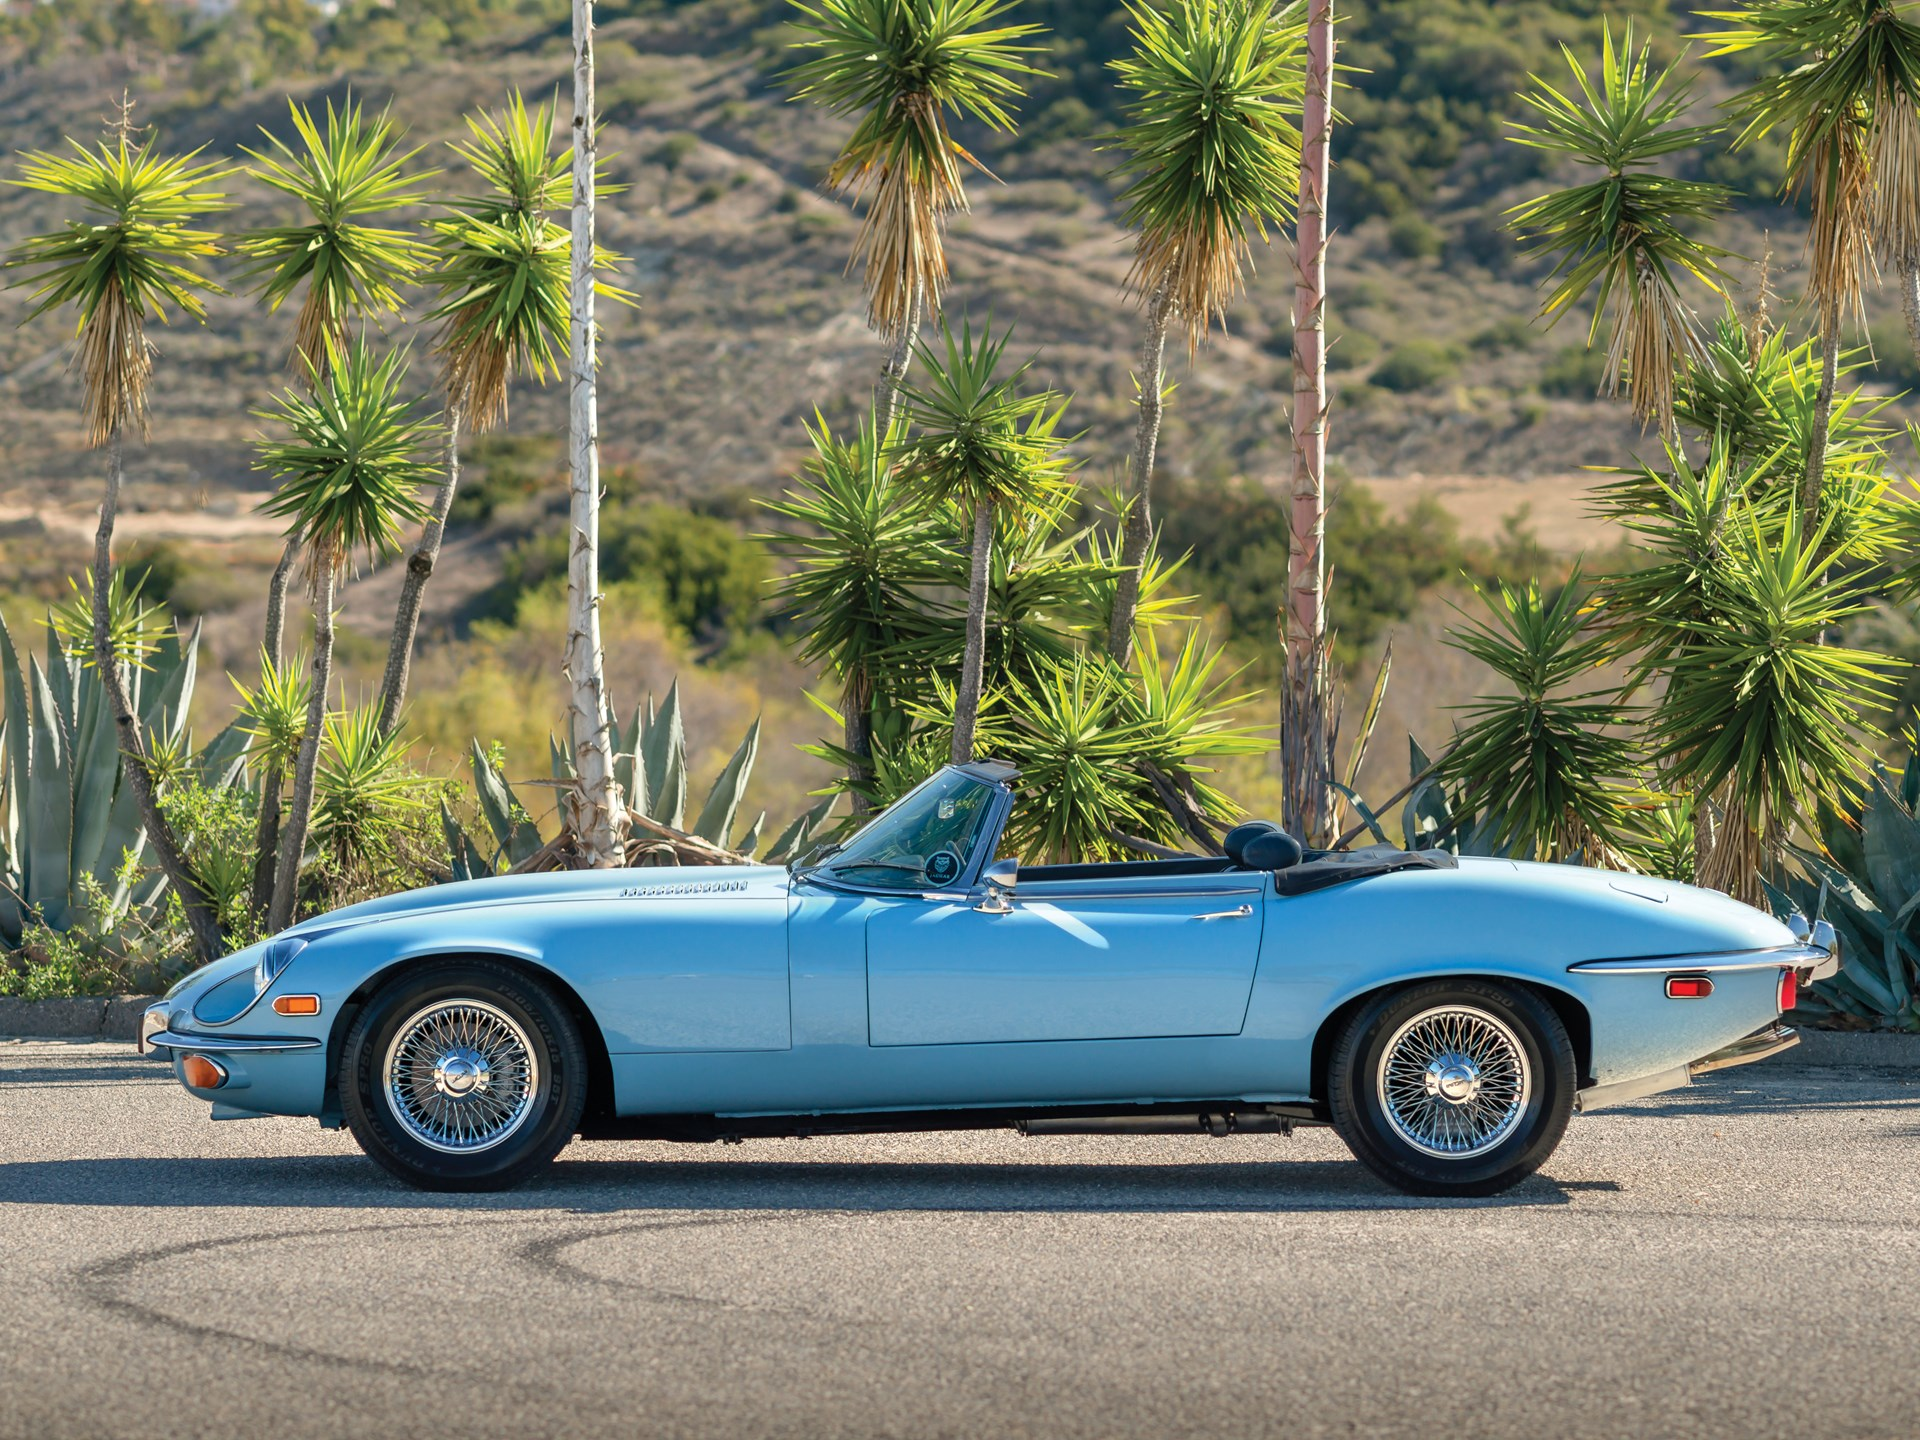 1972 Jaguar E-Type Series 3 V-12 Roadster